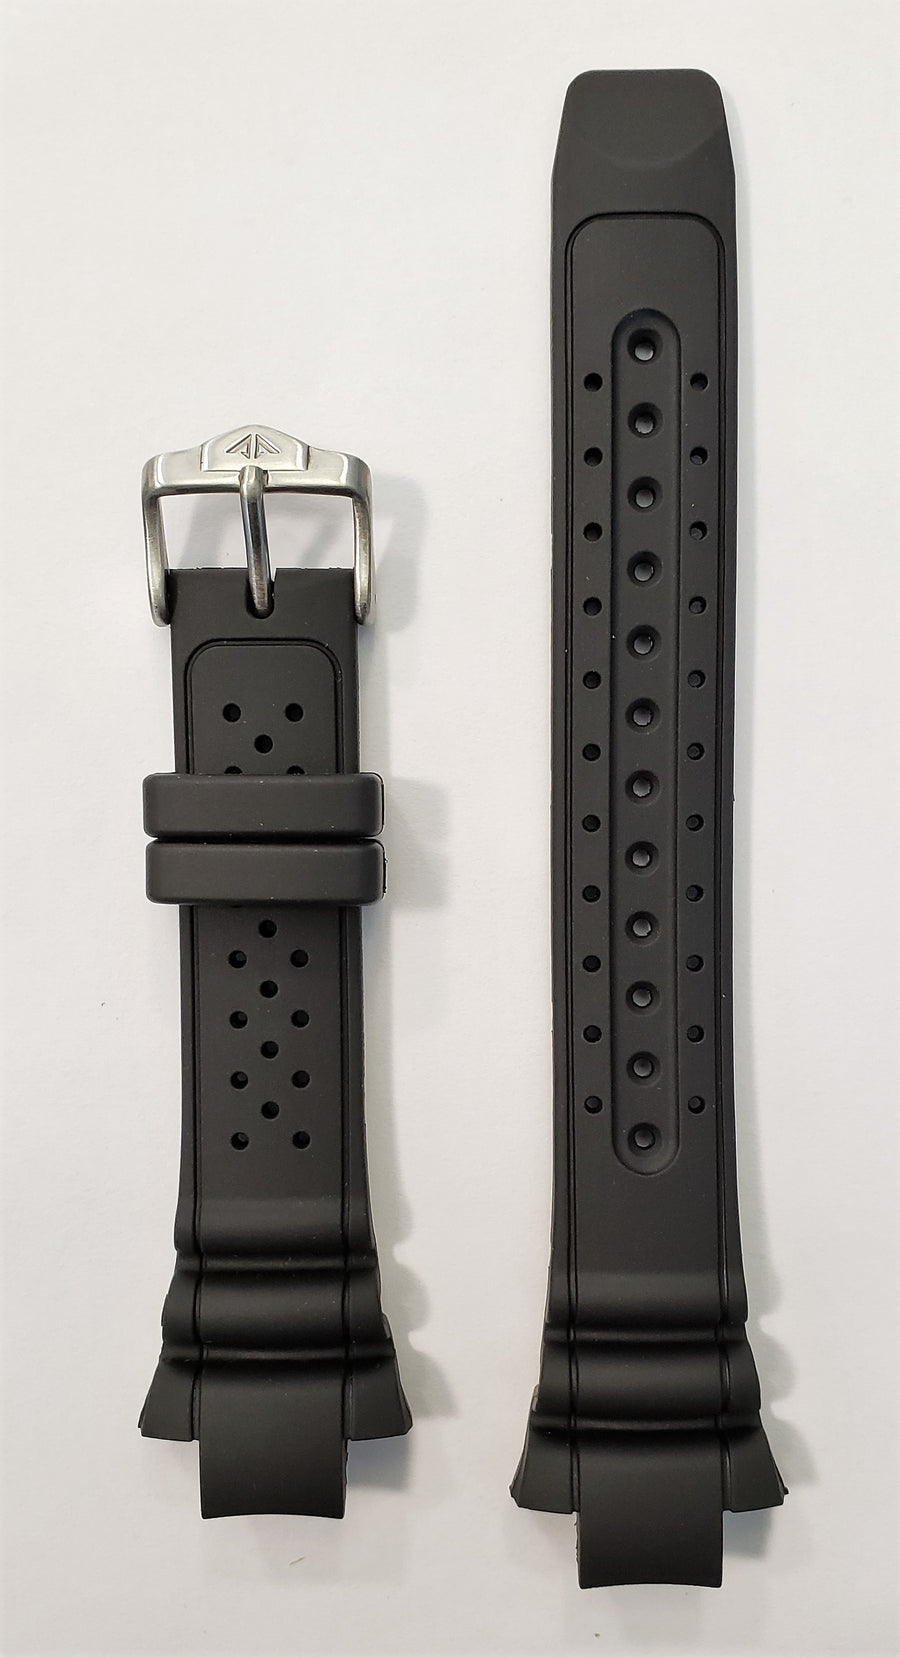 Citizen Cyber T004164 / T004172 Black Rubber Watch Band